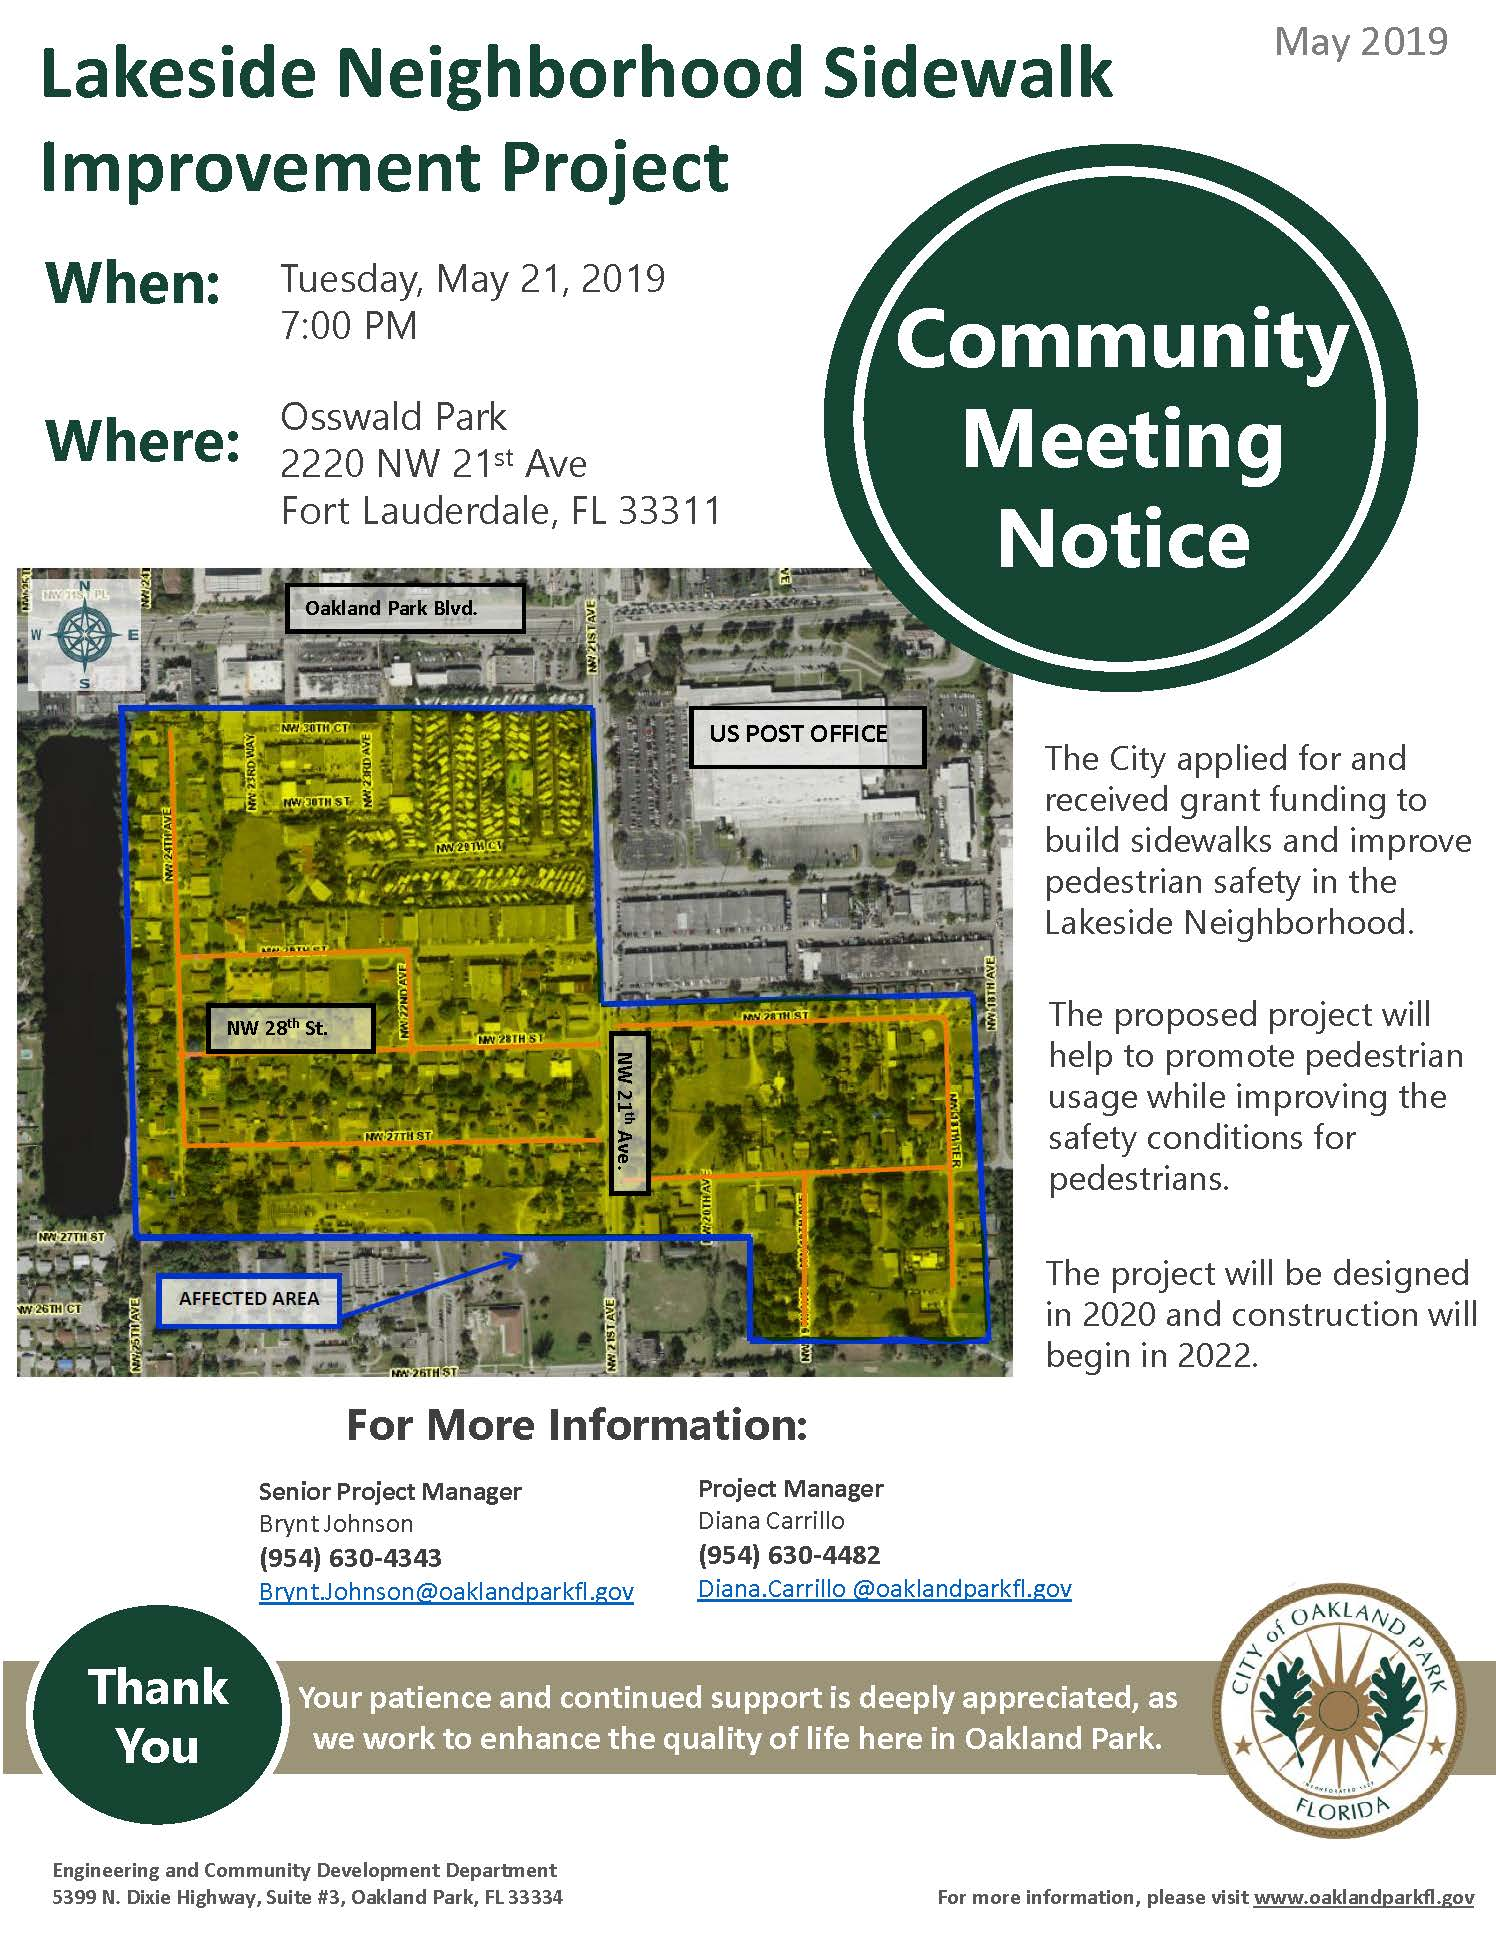 Lakeside Sidewalk Community Notice 5-21-19